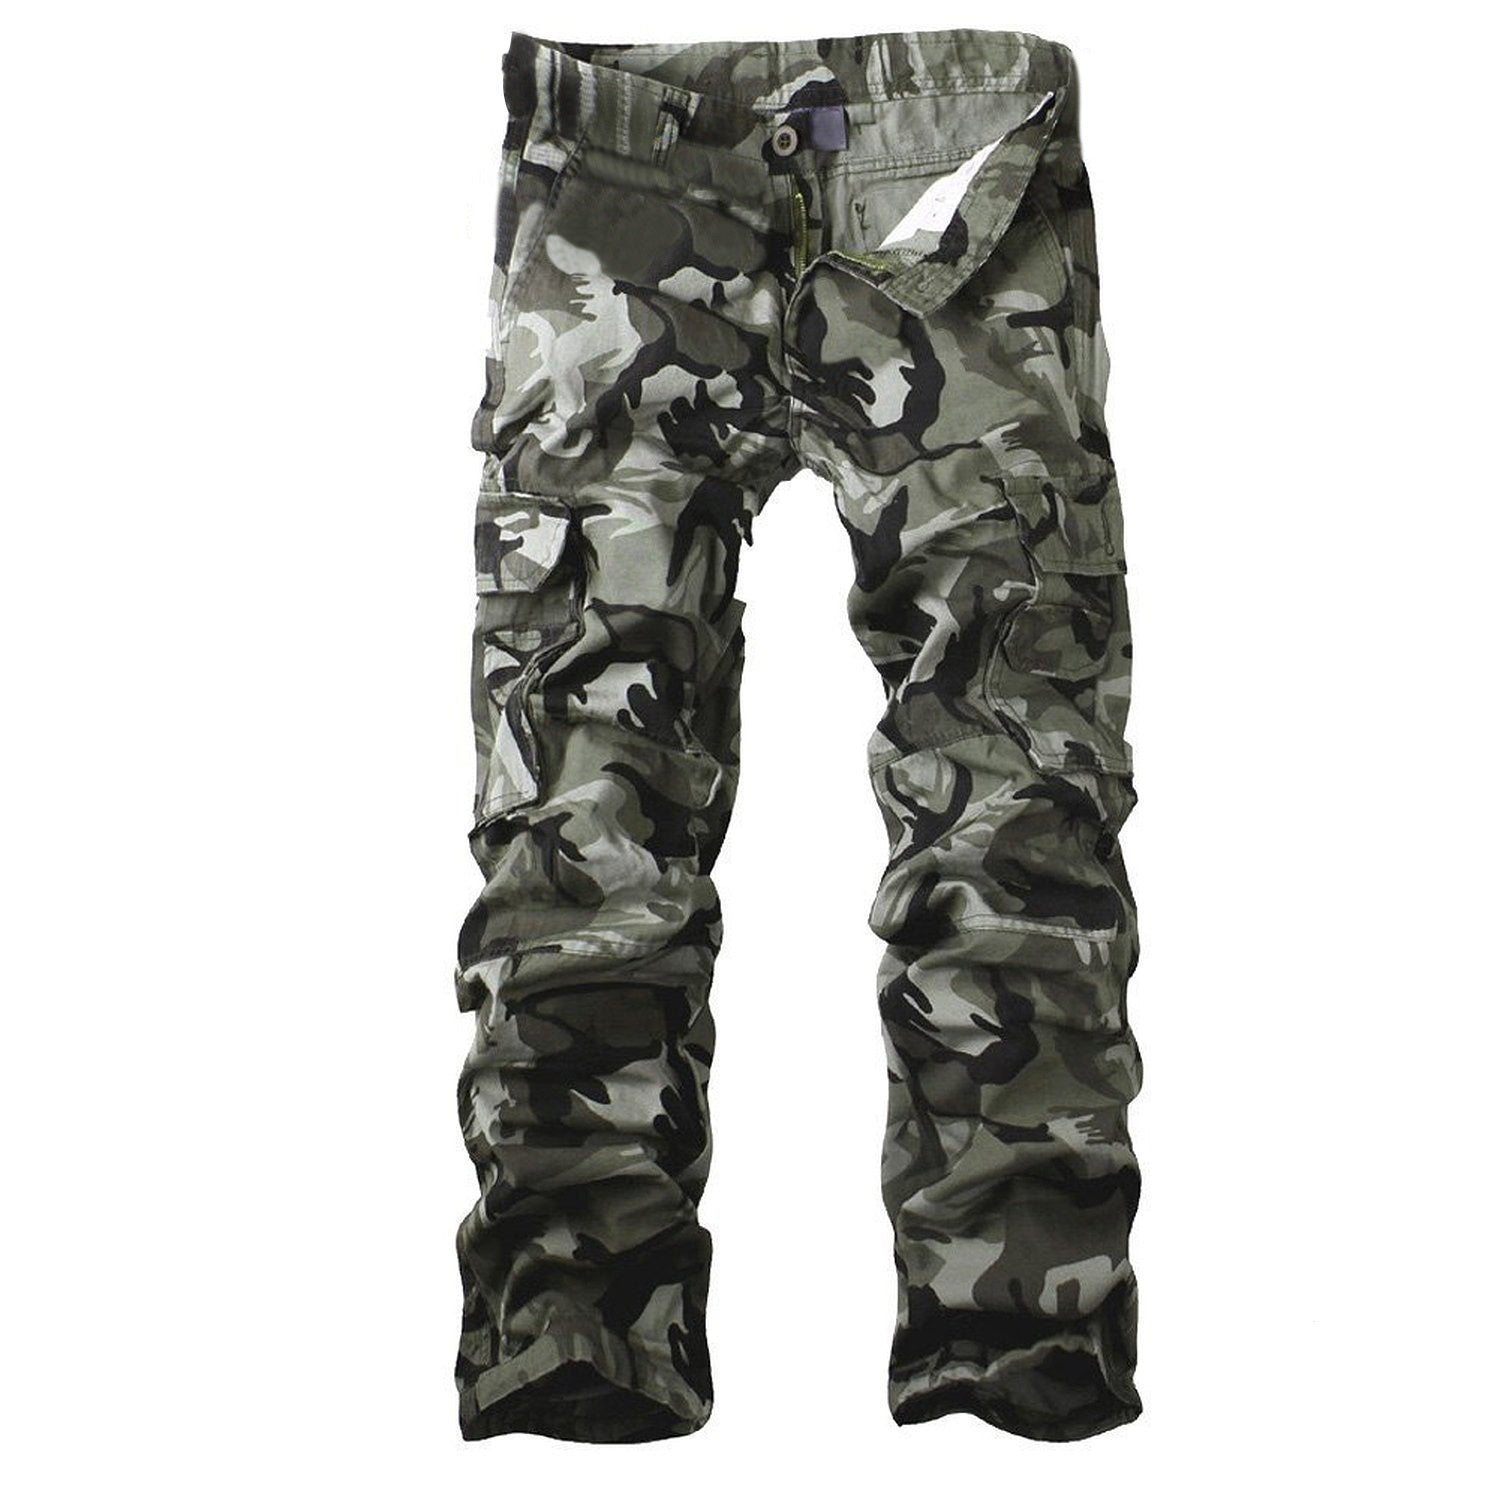 TROUSERS -  Military Camouflage Cargo Pants